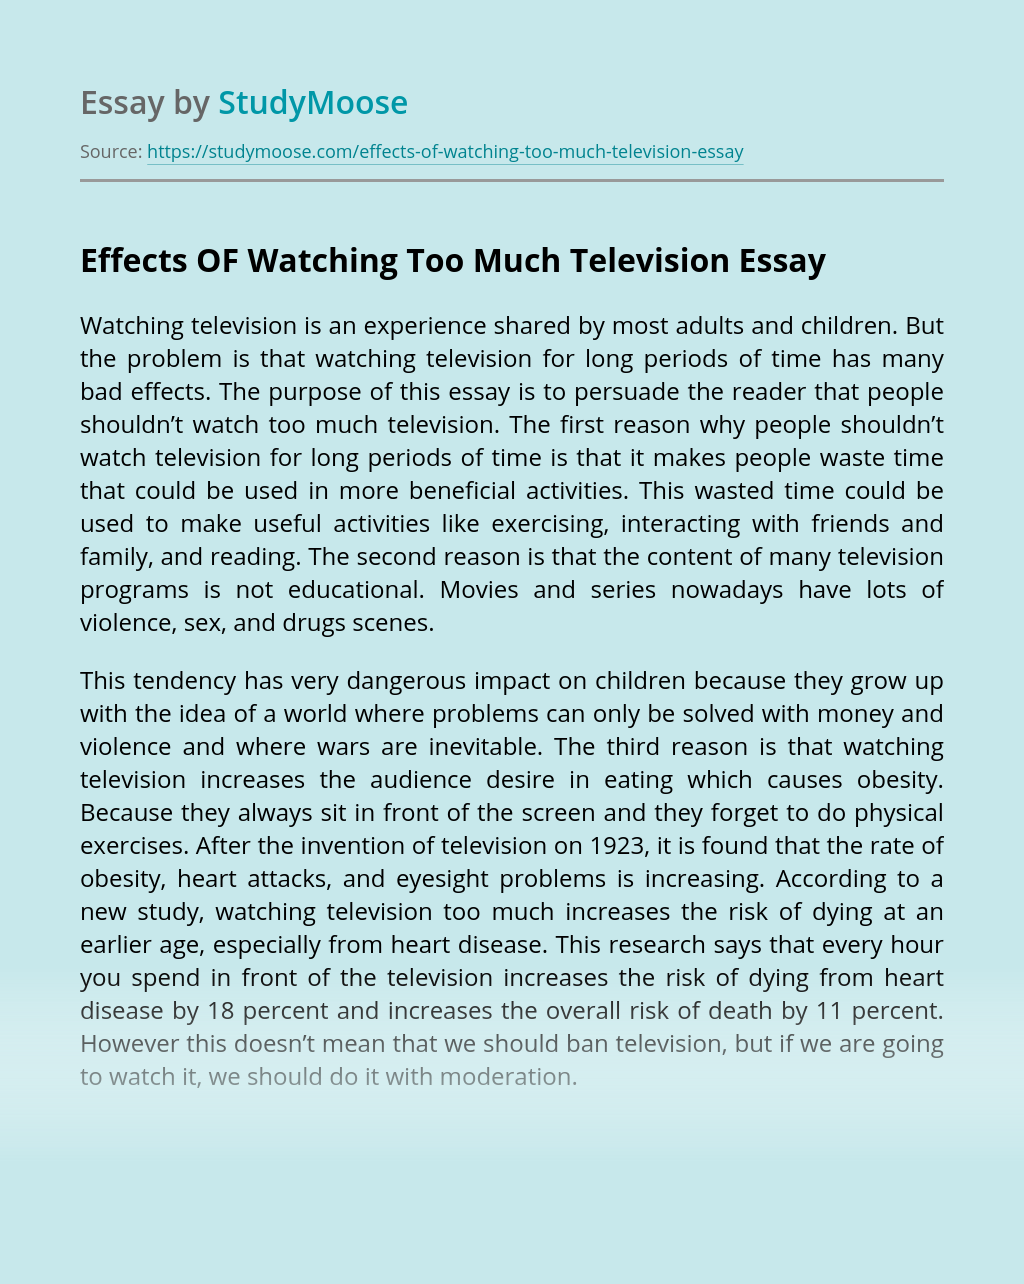 Effects OF Watching Too Much Television